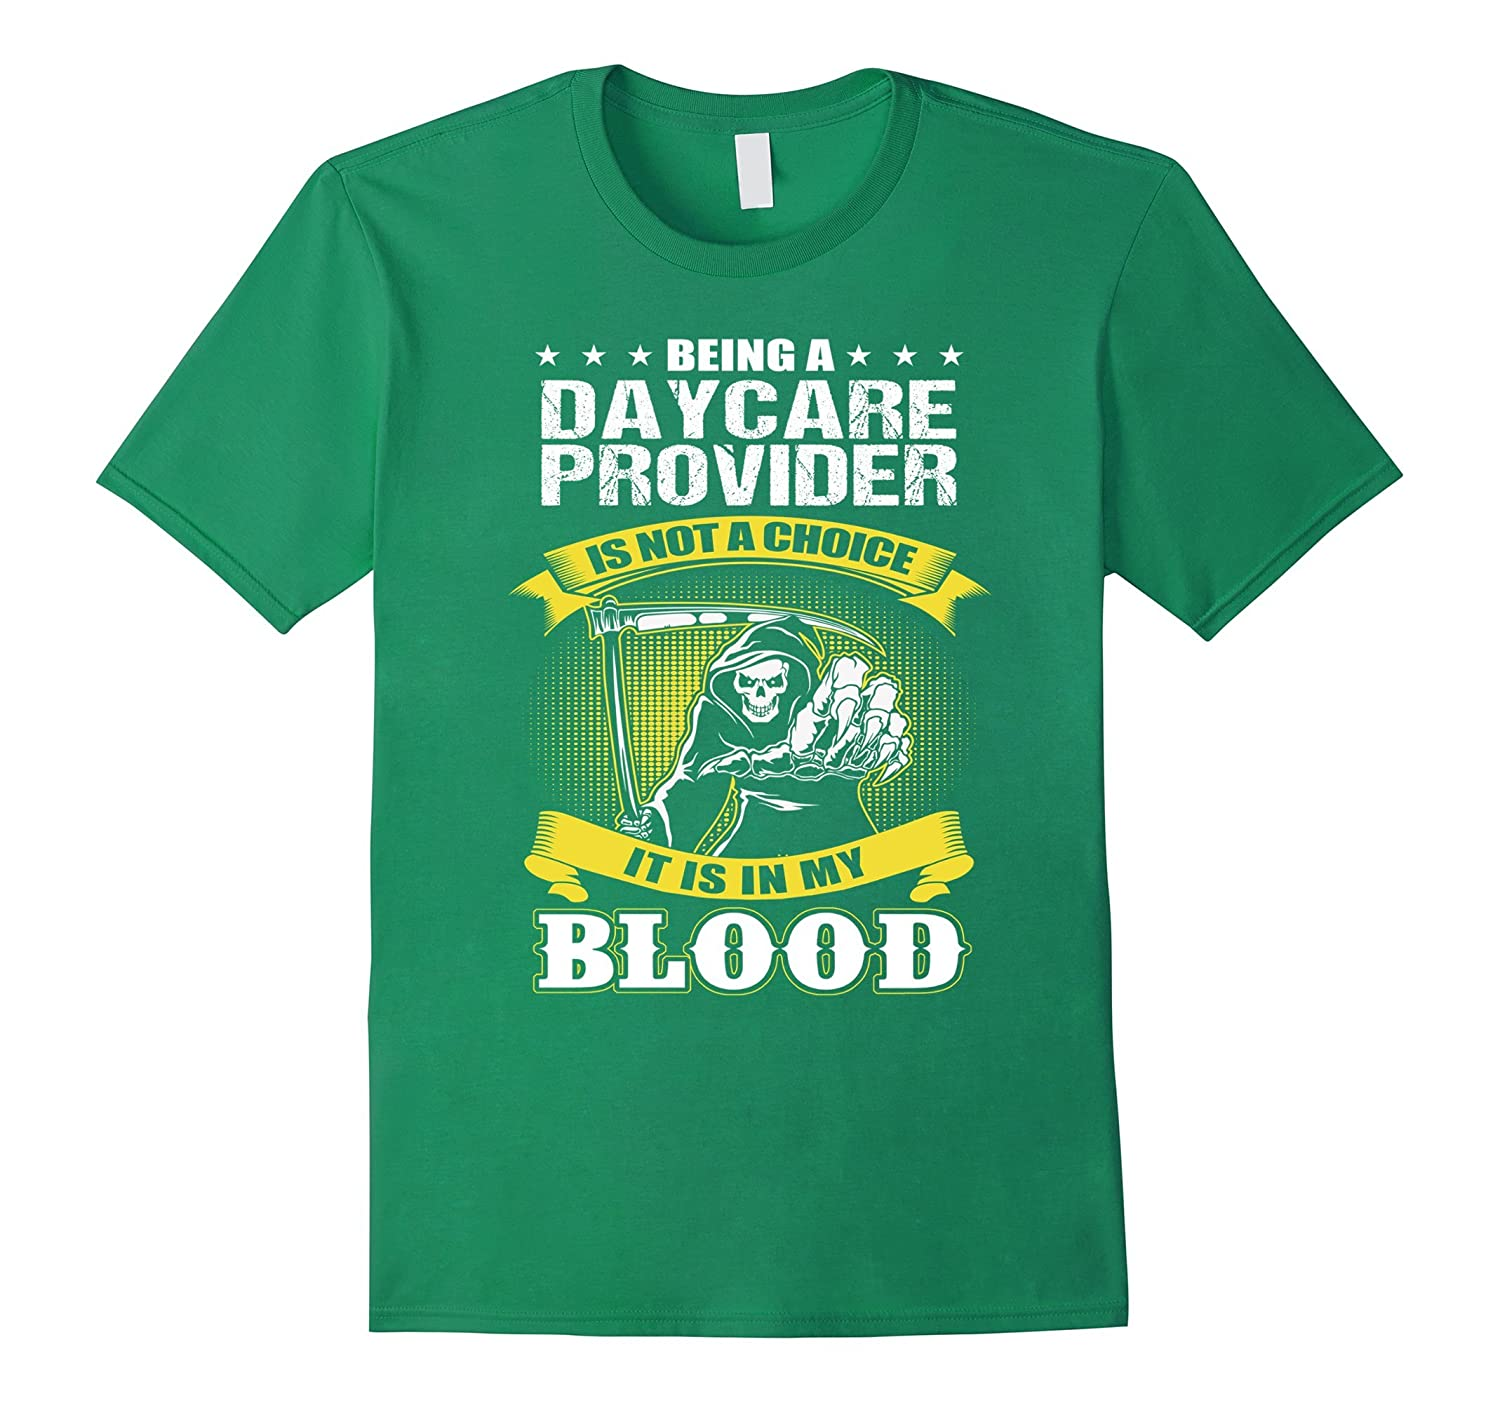 DAYCARE PROVIDER Is Not A Choice It Is In My Blood T-Shirts-Teevkd